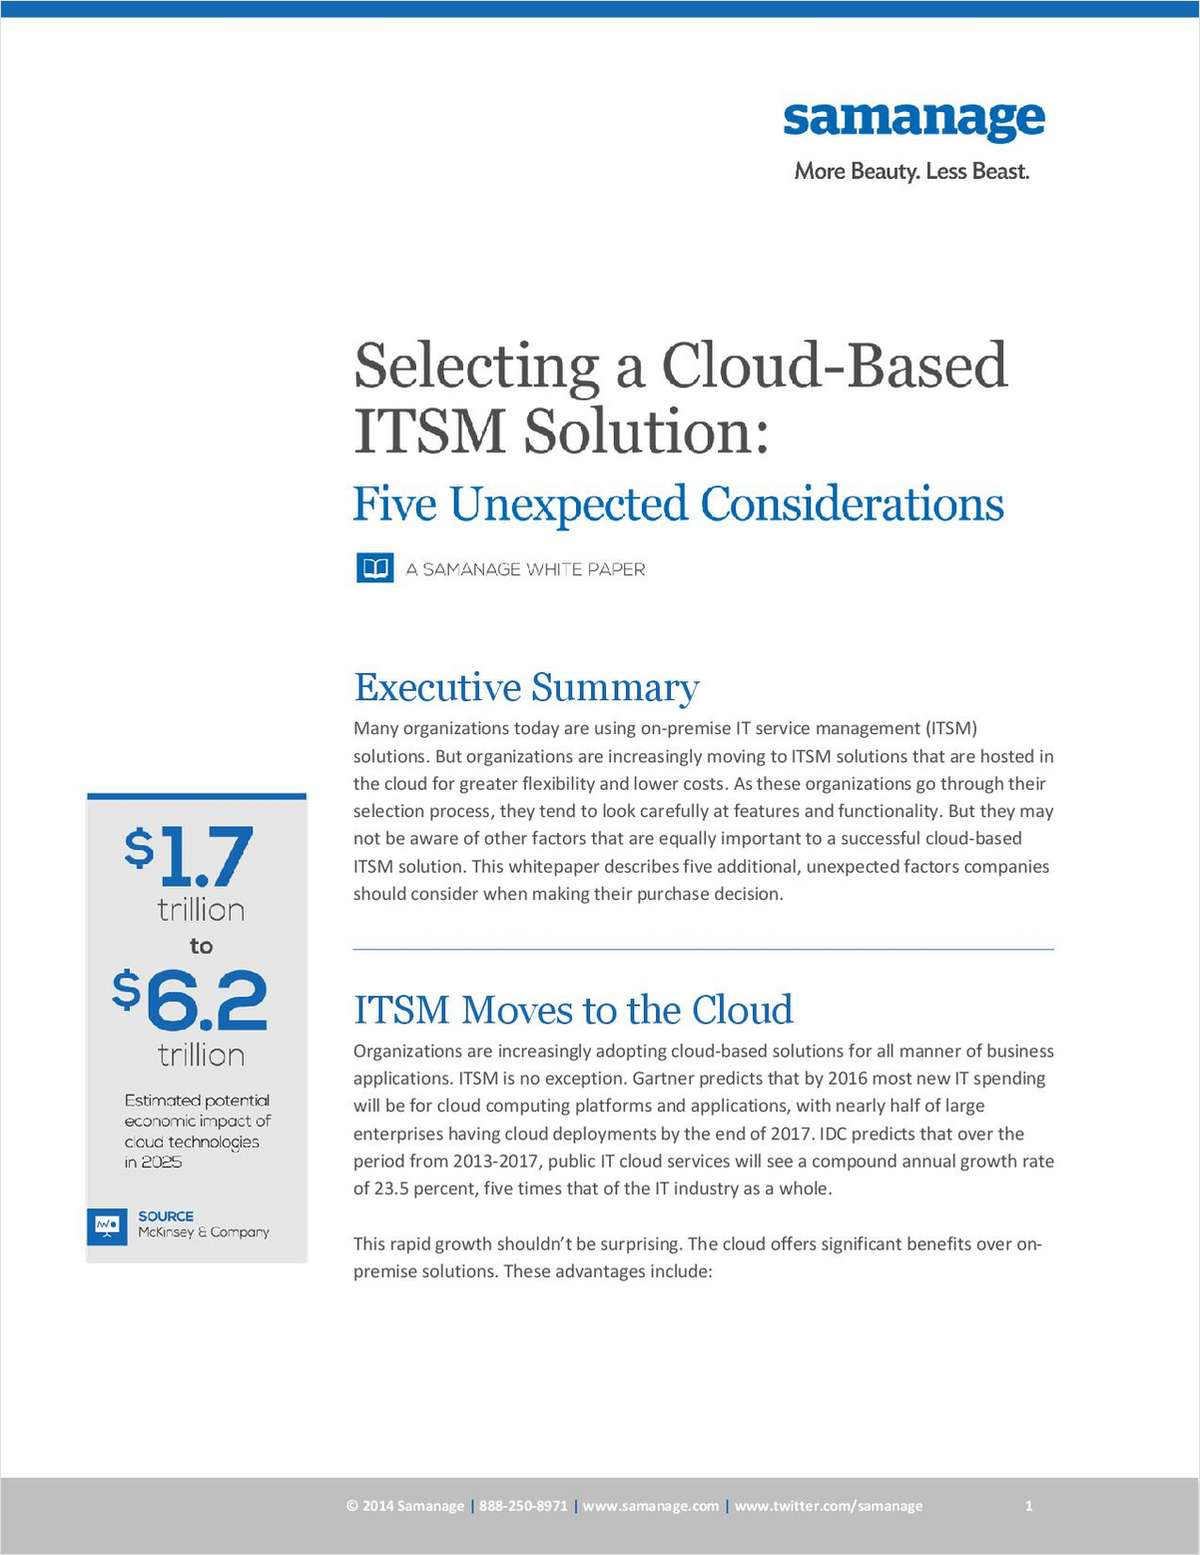 Selecting a Cloud-Based ITSM: Five Unexpected Considerations